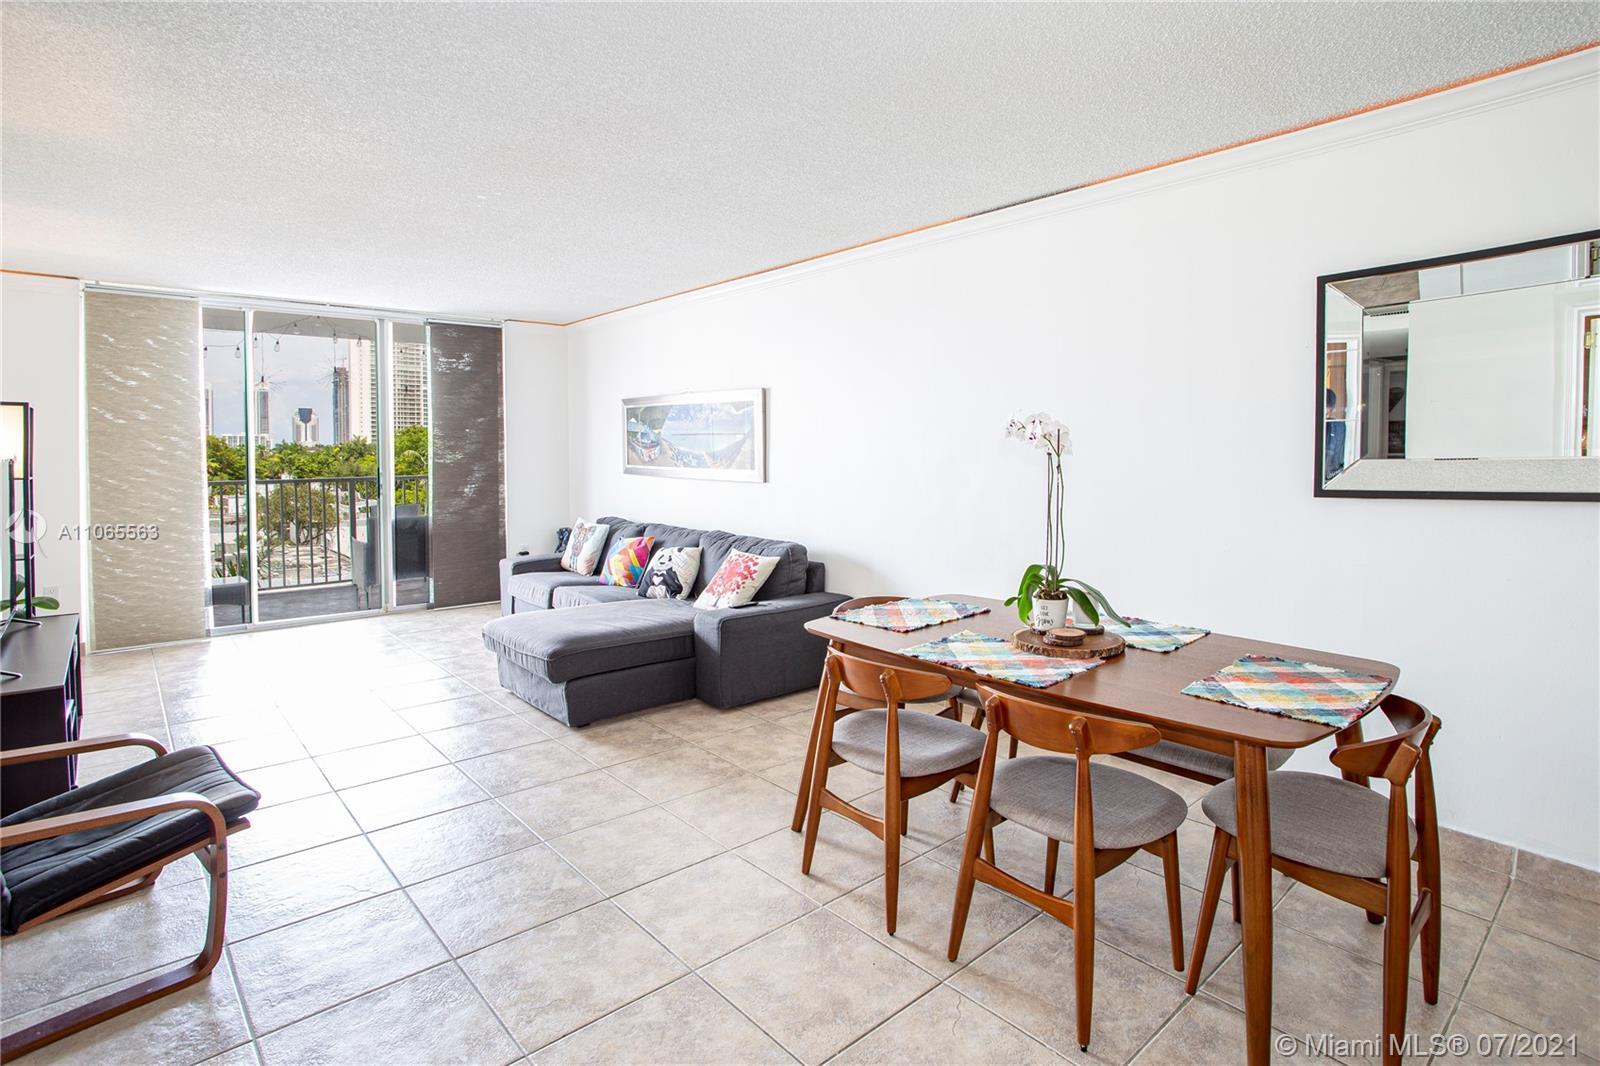 Spacious 2 bed, 2 bath in Admirals Port East. Amazing location in the heart of Aventura, right near